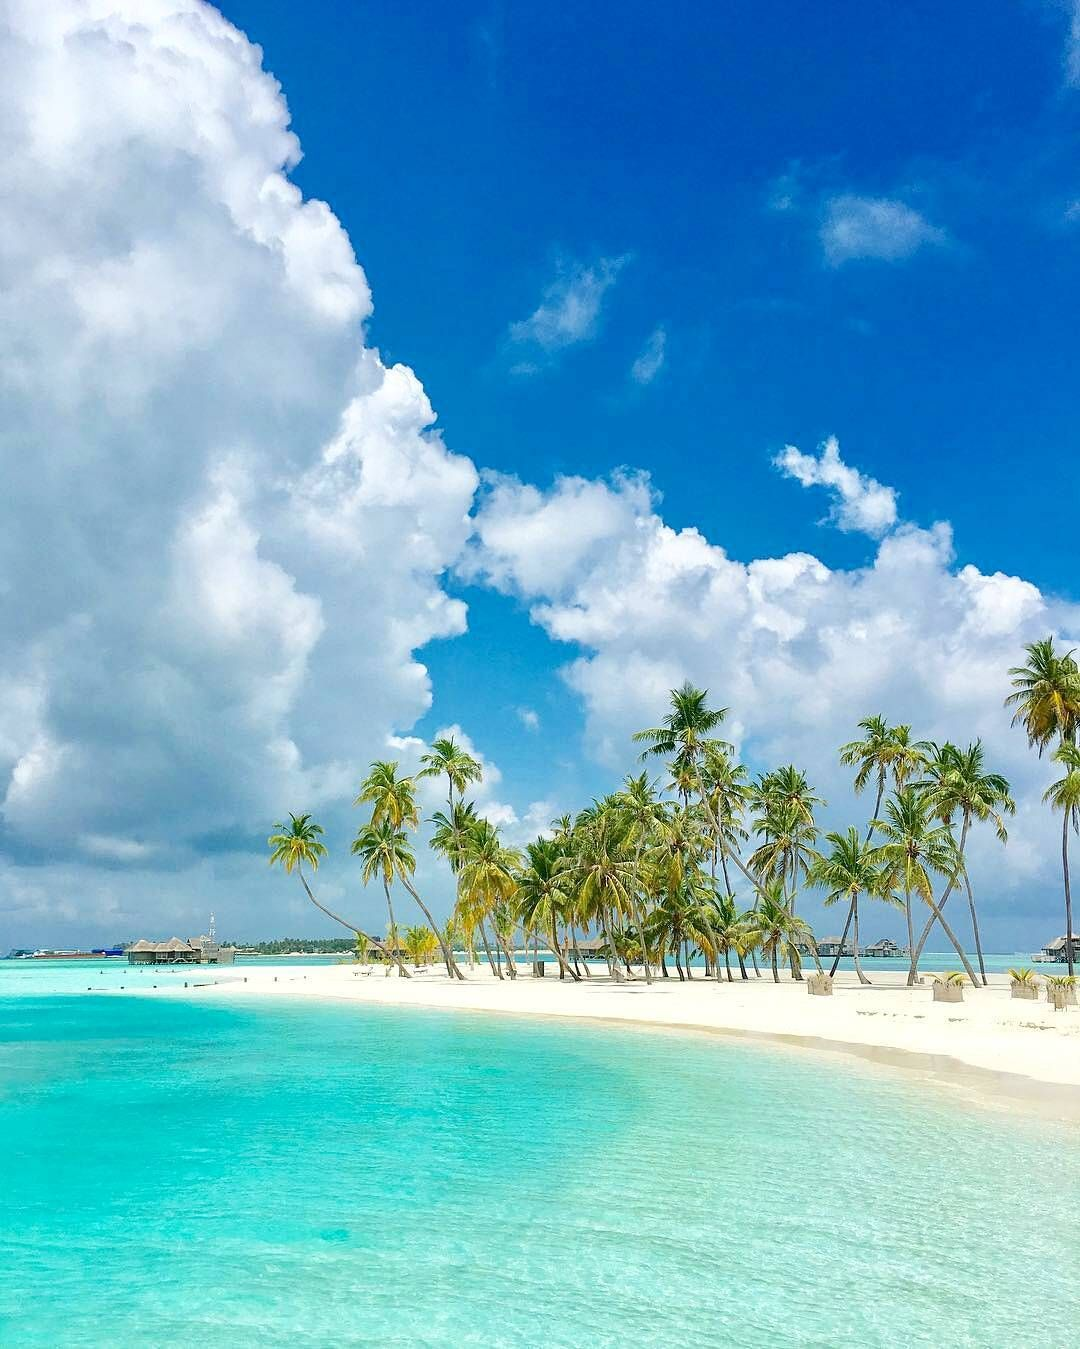 Tropical Beach And Peaceful Ocean: Lovely, Beautiful, Peaceful, Ocean, Sea, And Sky, Blue